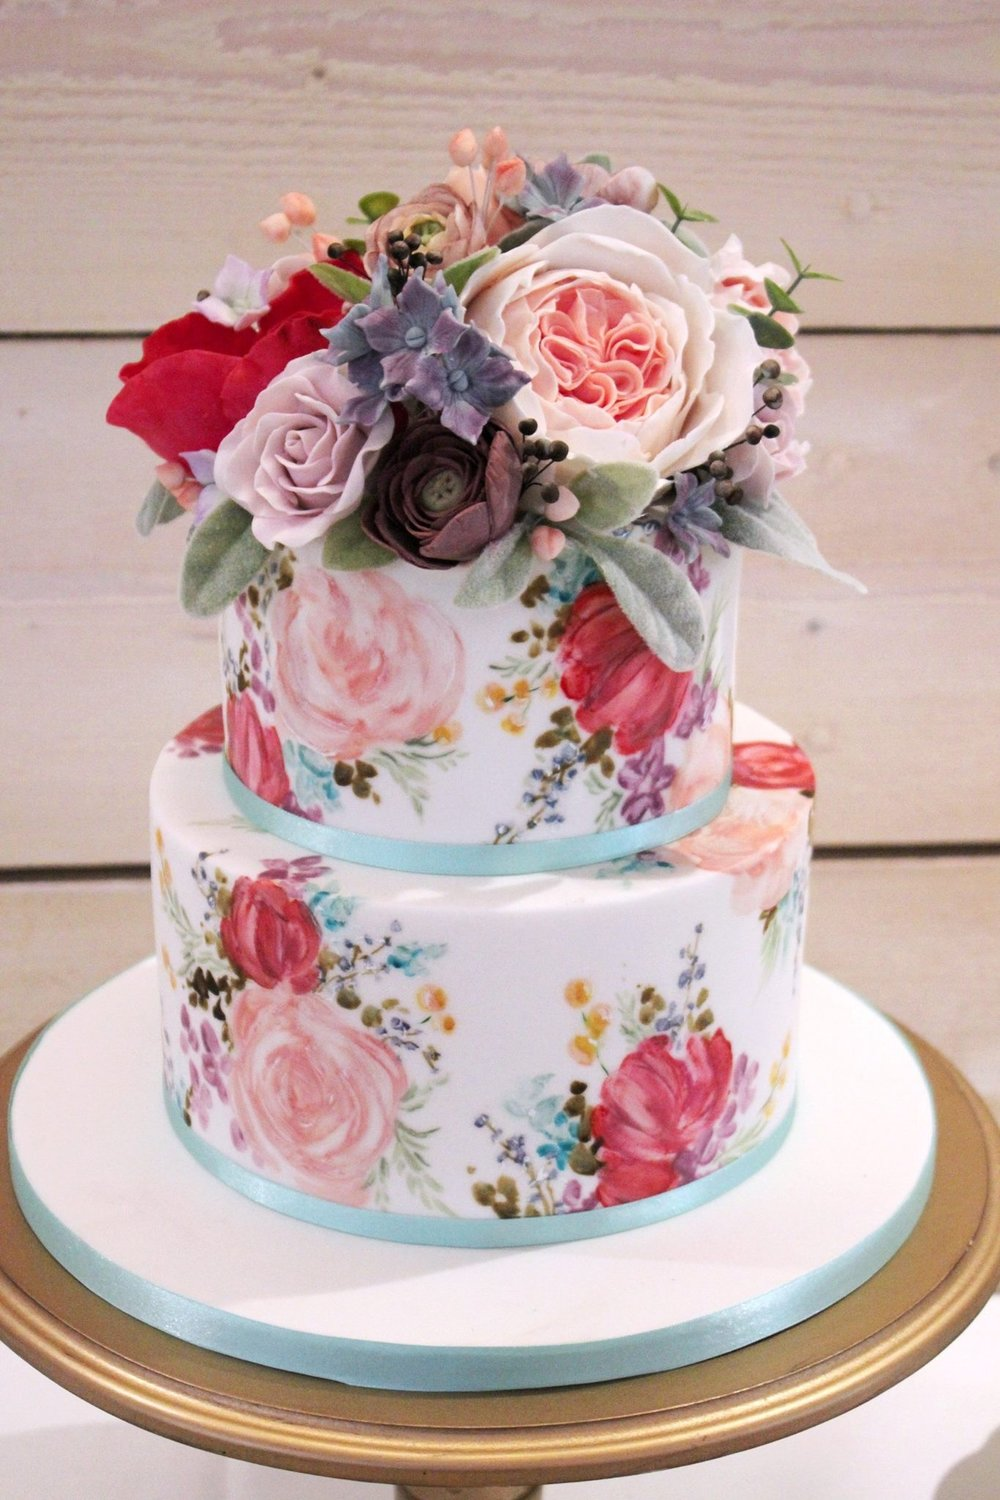 The Sugared Rose blue peach and red floral cake flowers.JPG